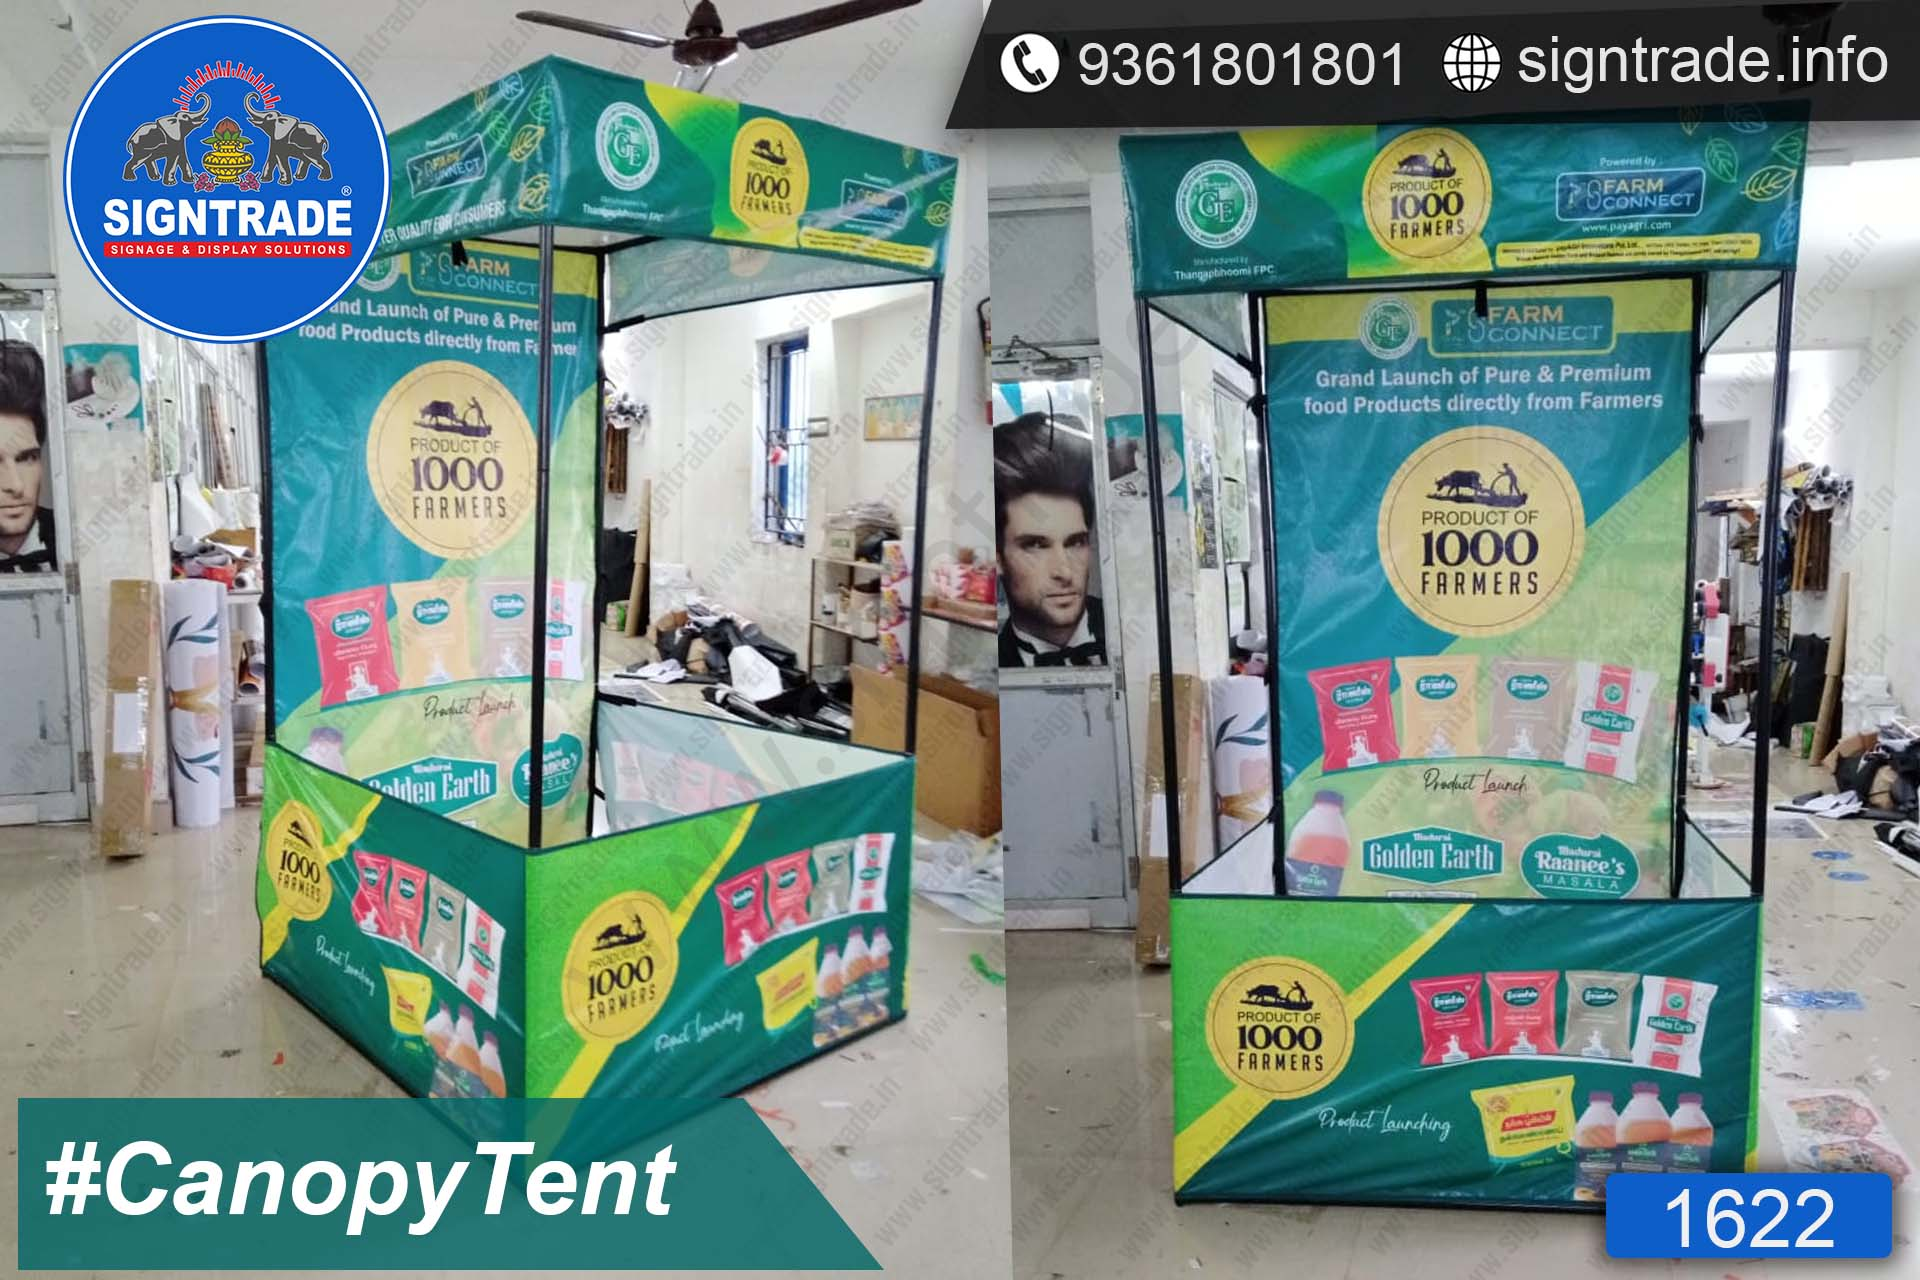 Farm Connect - Canopy Tent - SIGNTRADE - Promotional Canopy Tent Manufacturers in Chennai